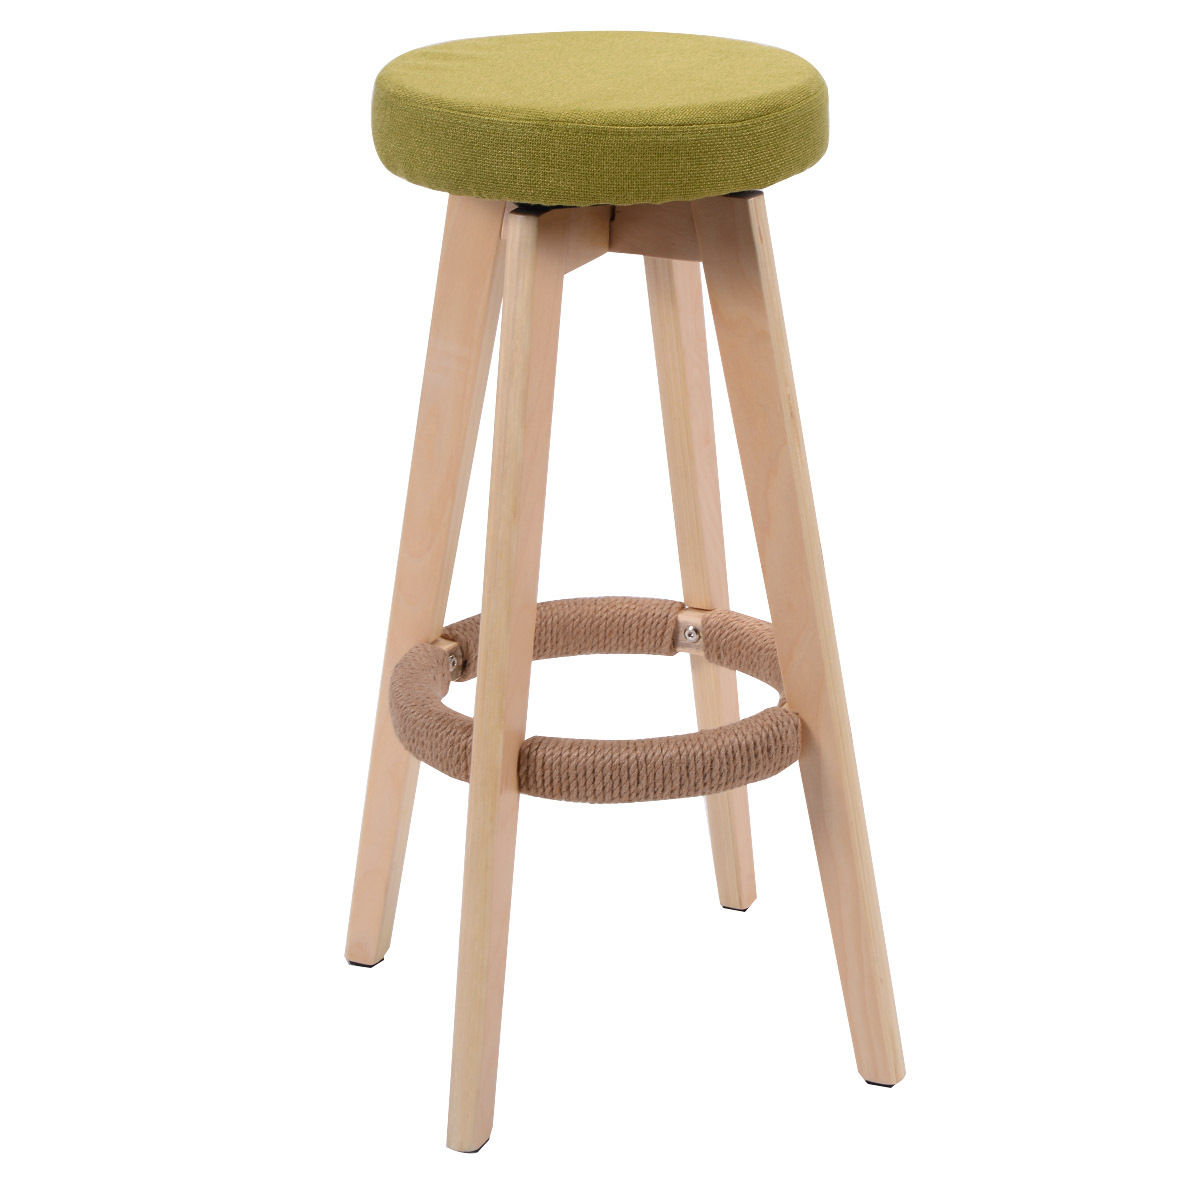 Giantex 29-Inch Round Wood Bar Stool Modern Dining Chair Counter Height Linen Seat Green Bar Chairs Home Furniture HW52977GR bar stool breakfast kitchen bistro cafe vintage wood dining chairs modern bar chair dropshipping